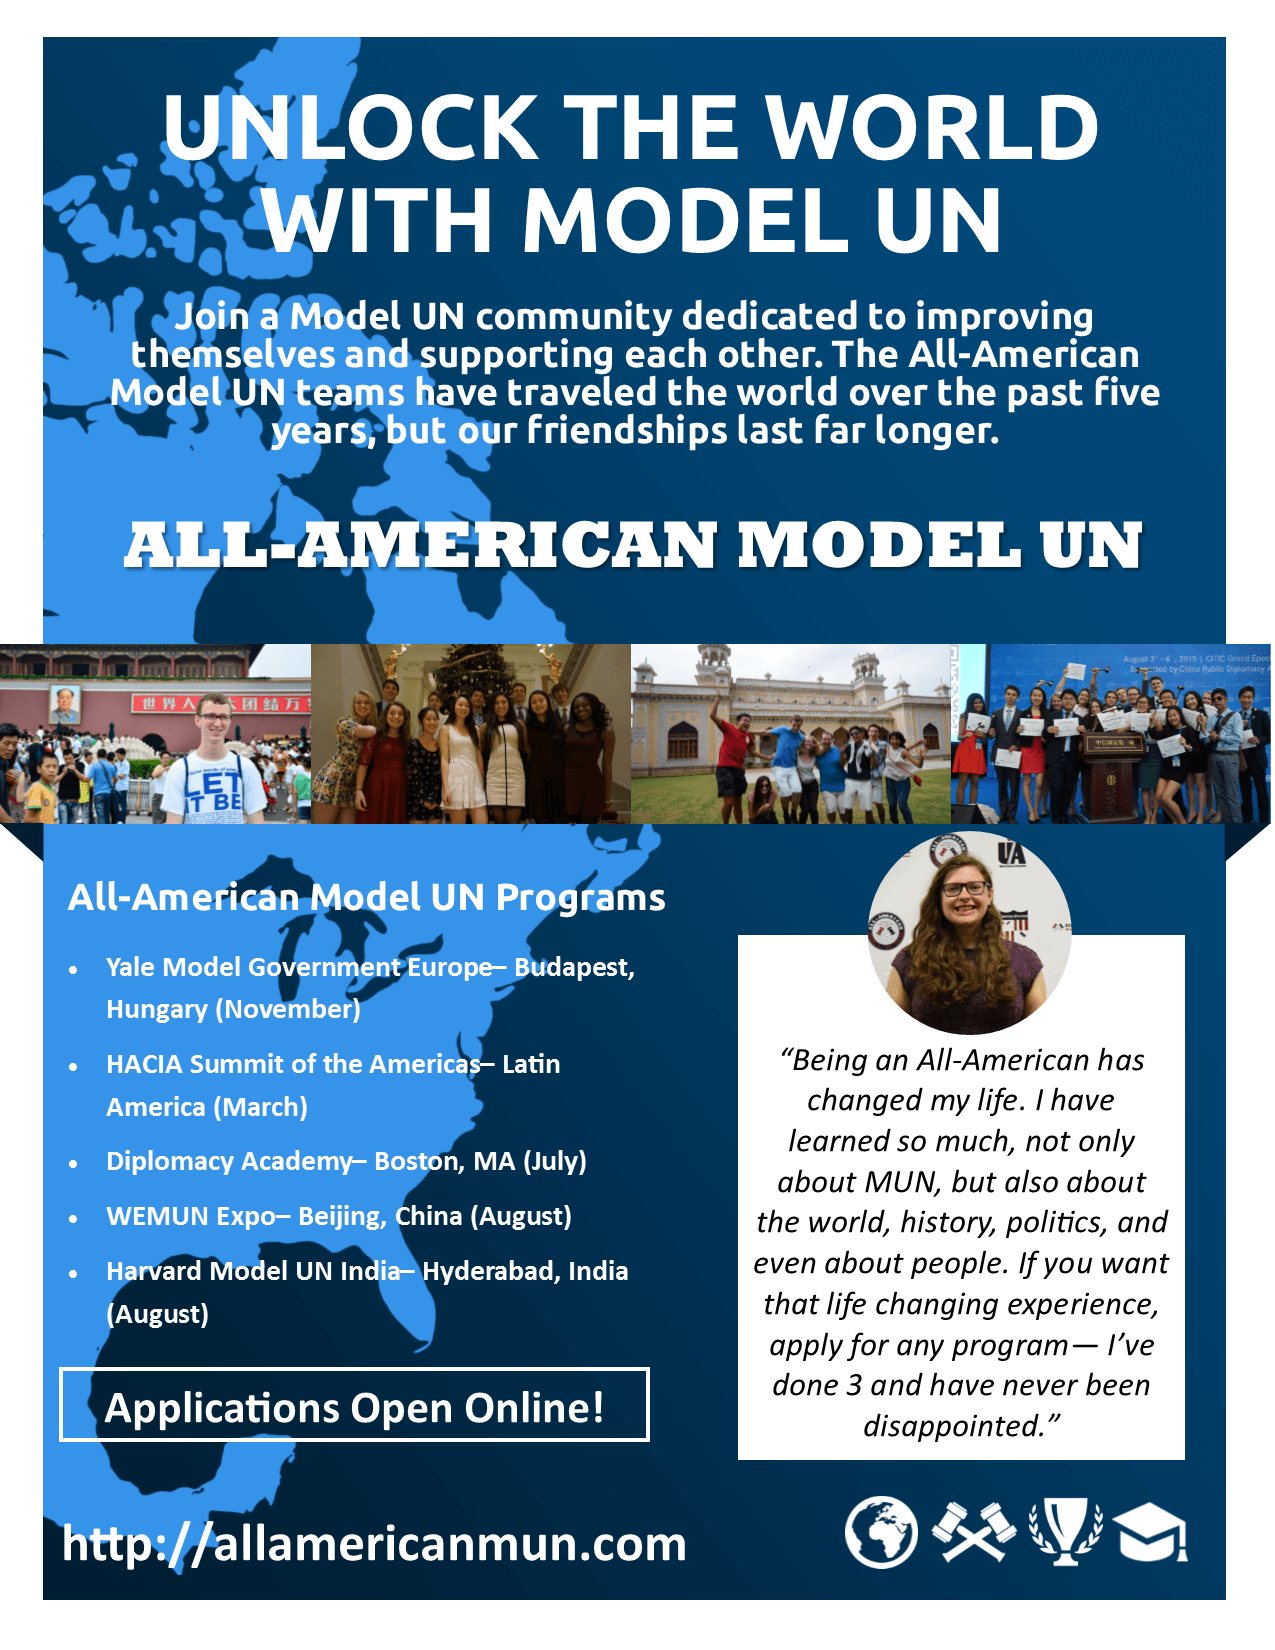 Call for All-American Model UN Applications